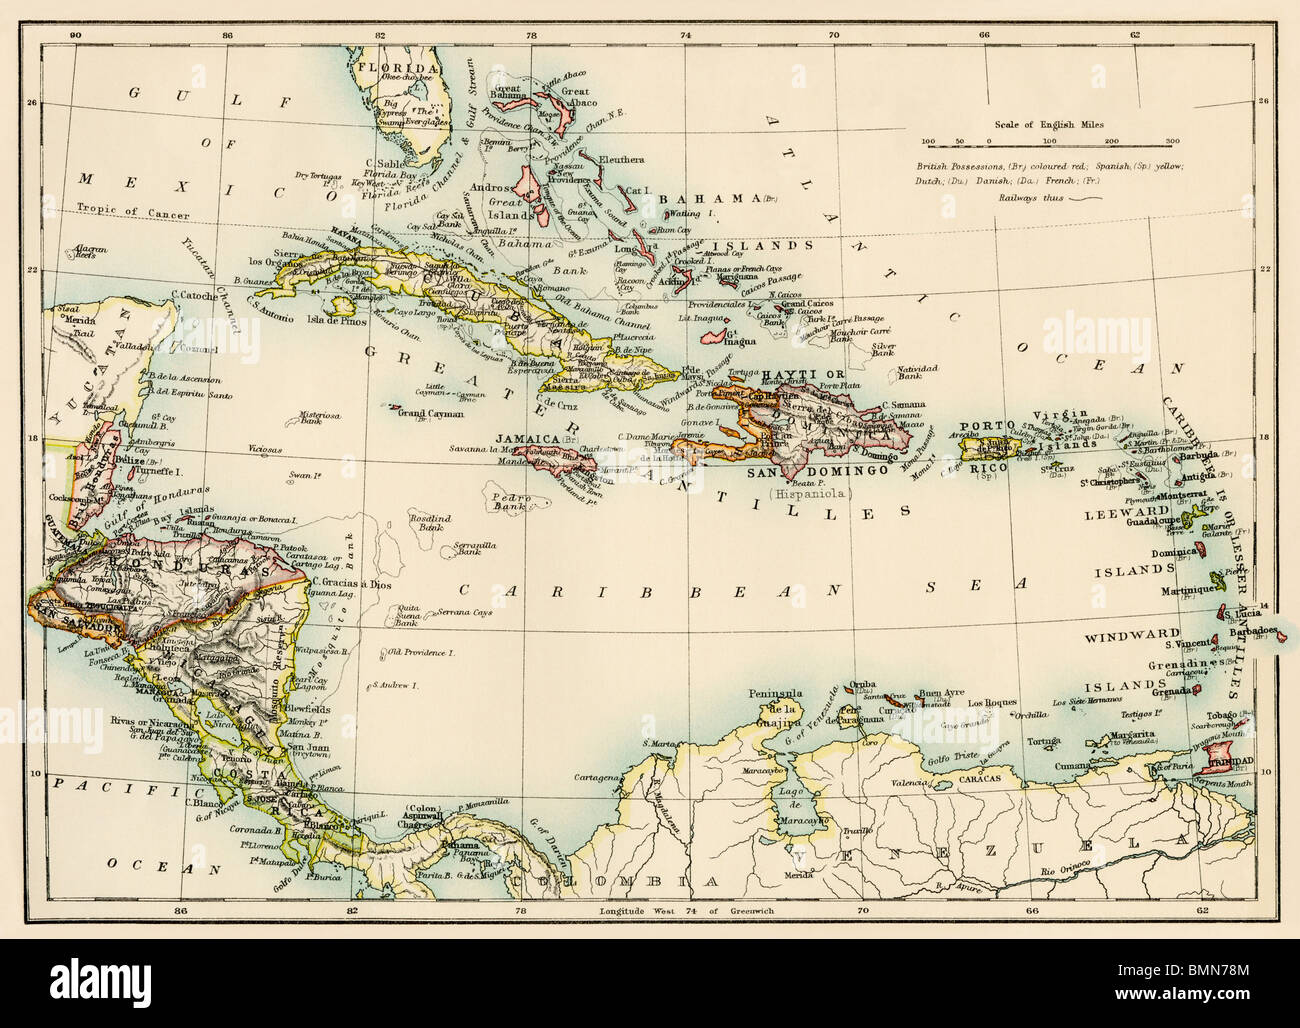 Map of West Indies and the Caribbean Sea 1800s Stock Photo